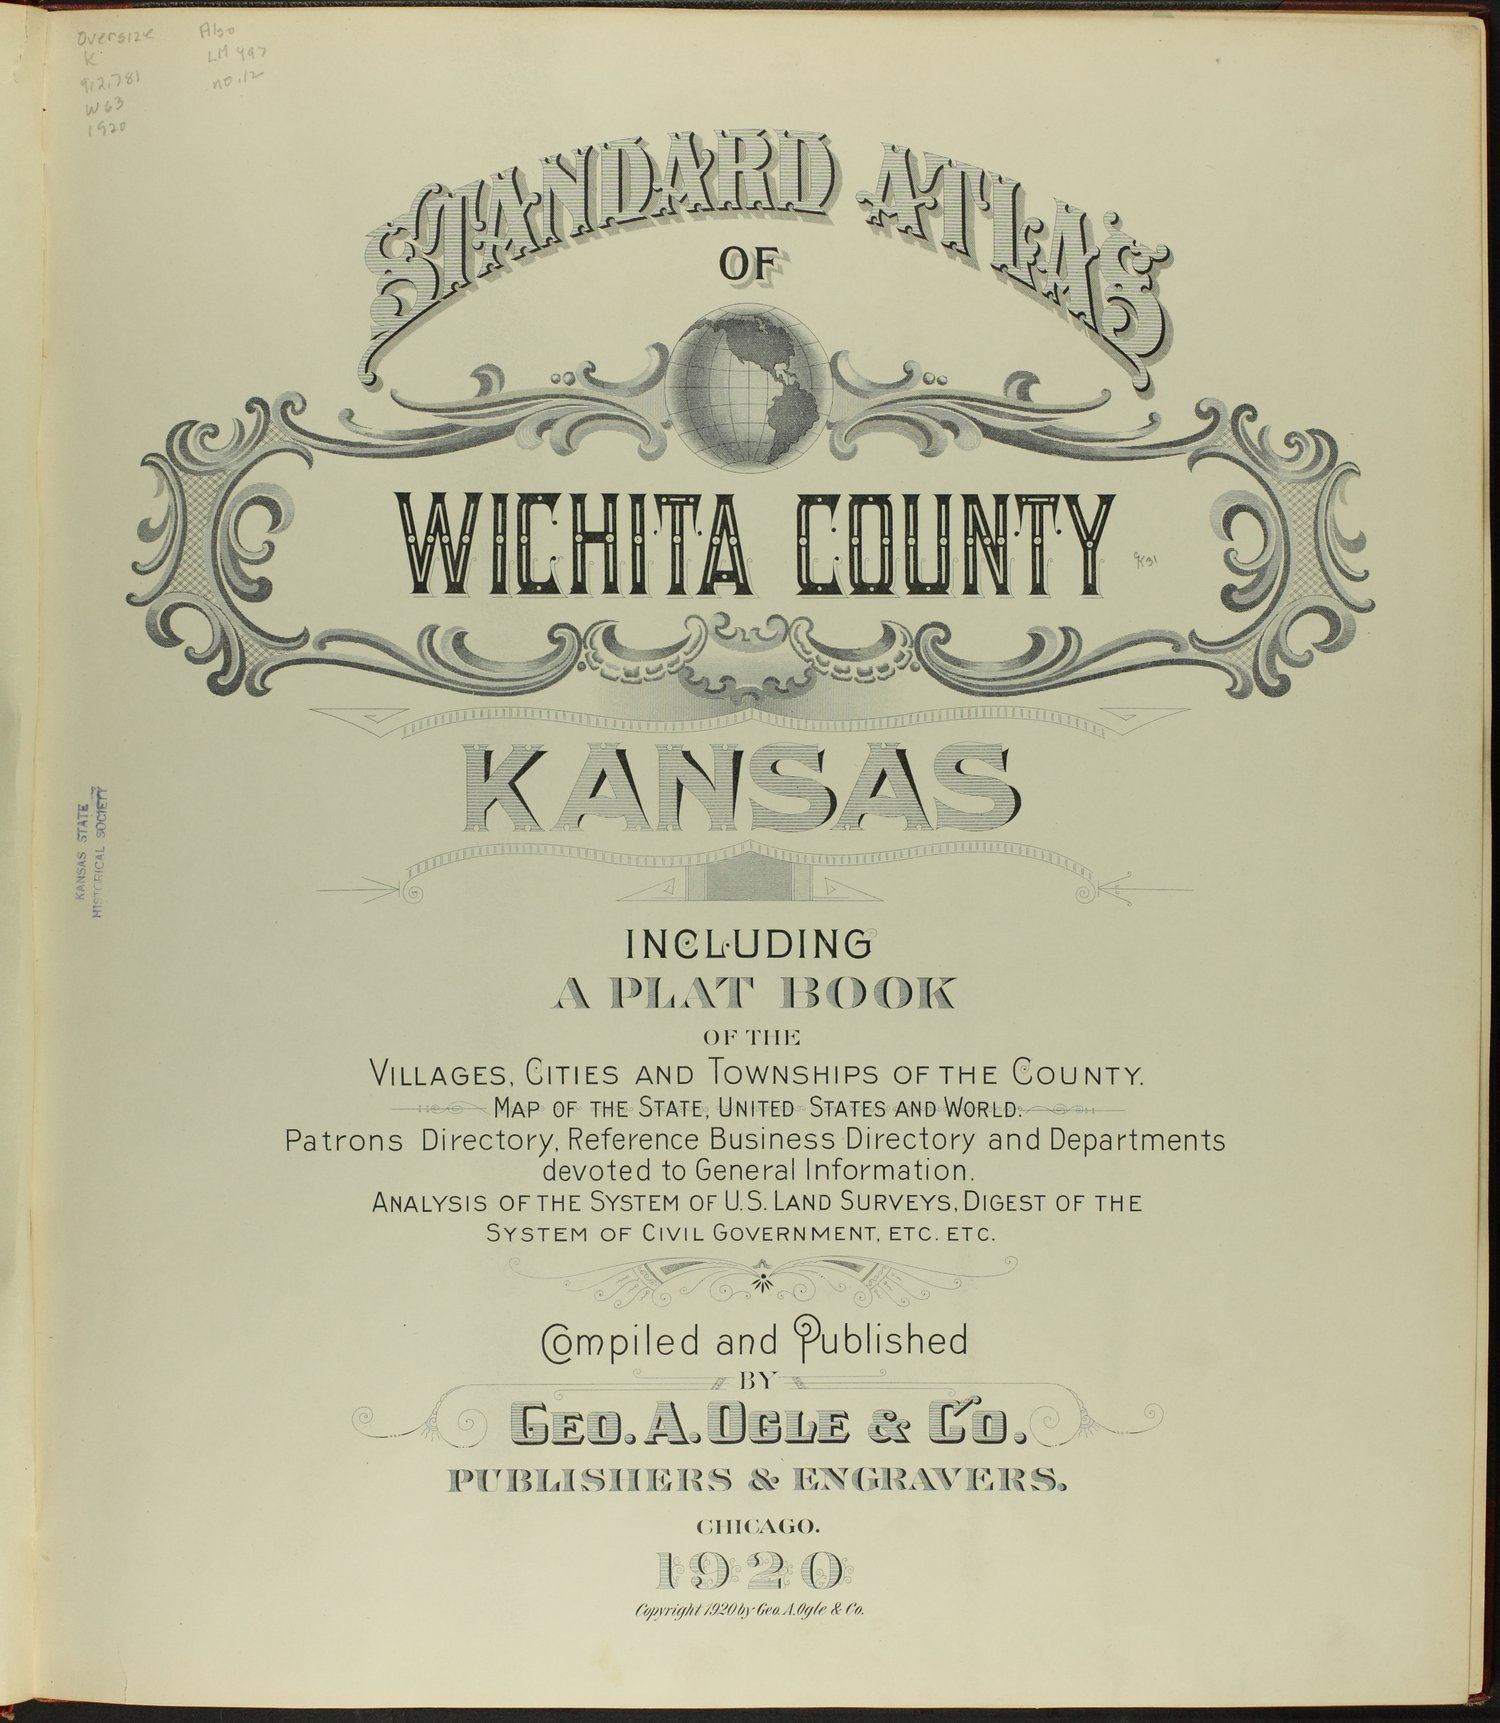 Standard atlas of Wichita County, Kansas - Title Page